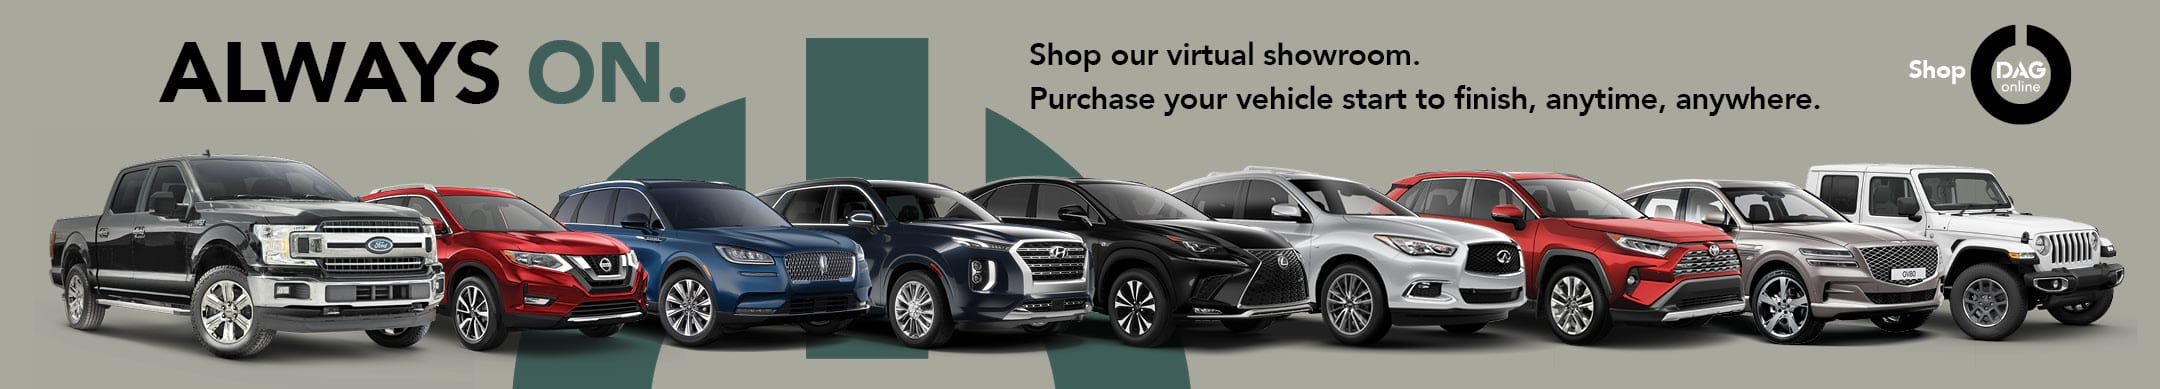 Shop our virtual showroom. Purchase your vehicle start to finish, anytime, anywhere. Image of a vehicle lineup